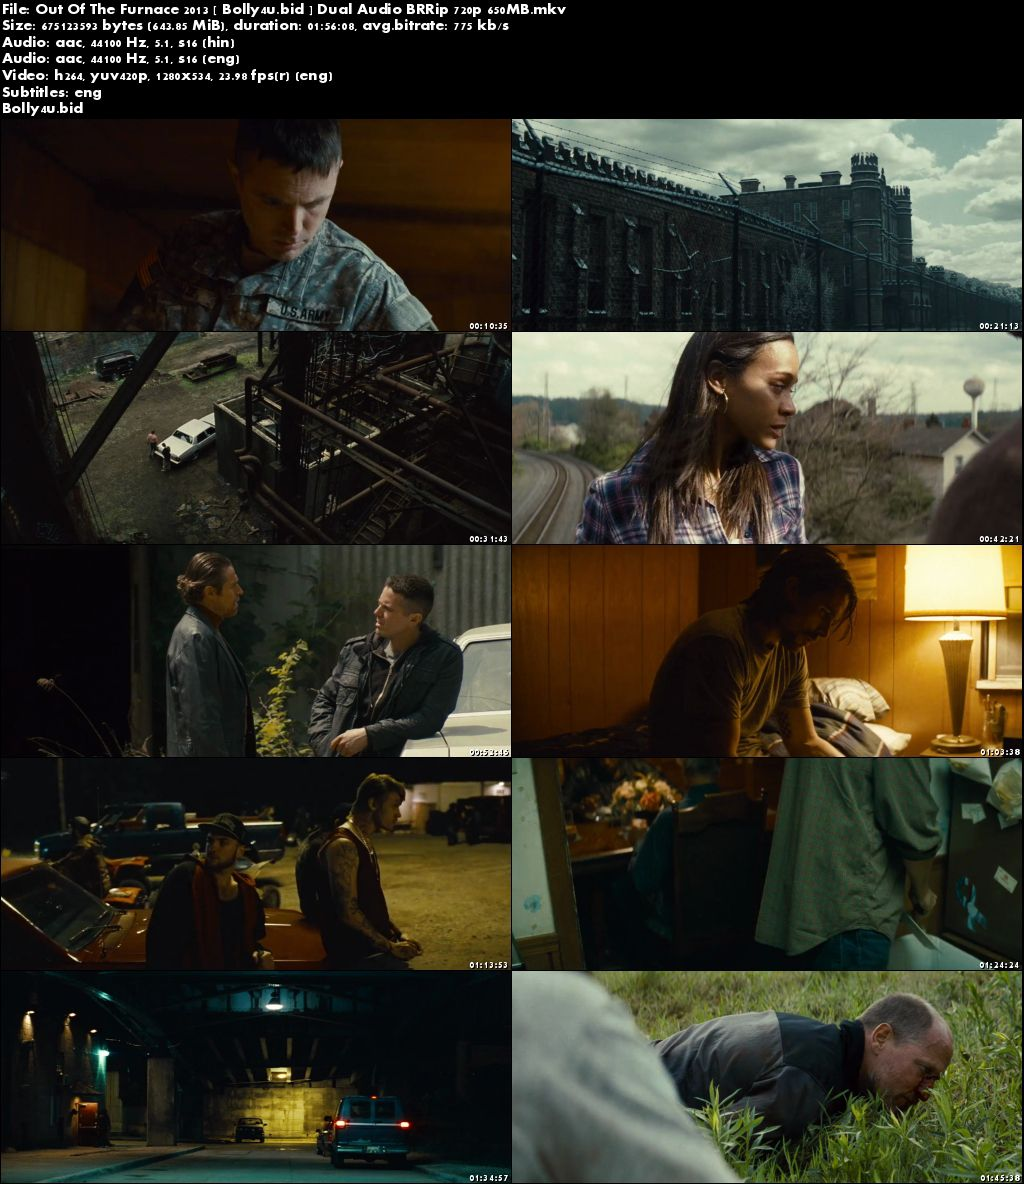 Out Of The Furnace 2013 BRRip 650MB Hindi Dual Audio 720p Download